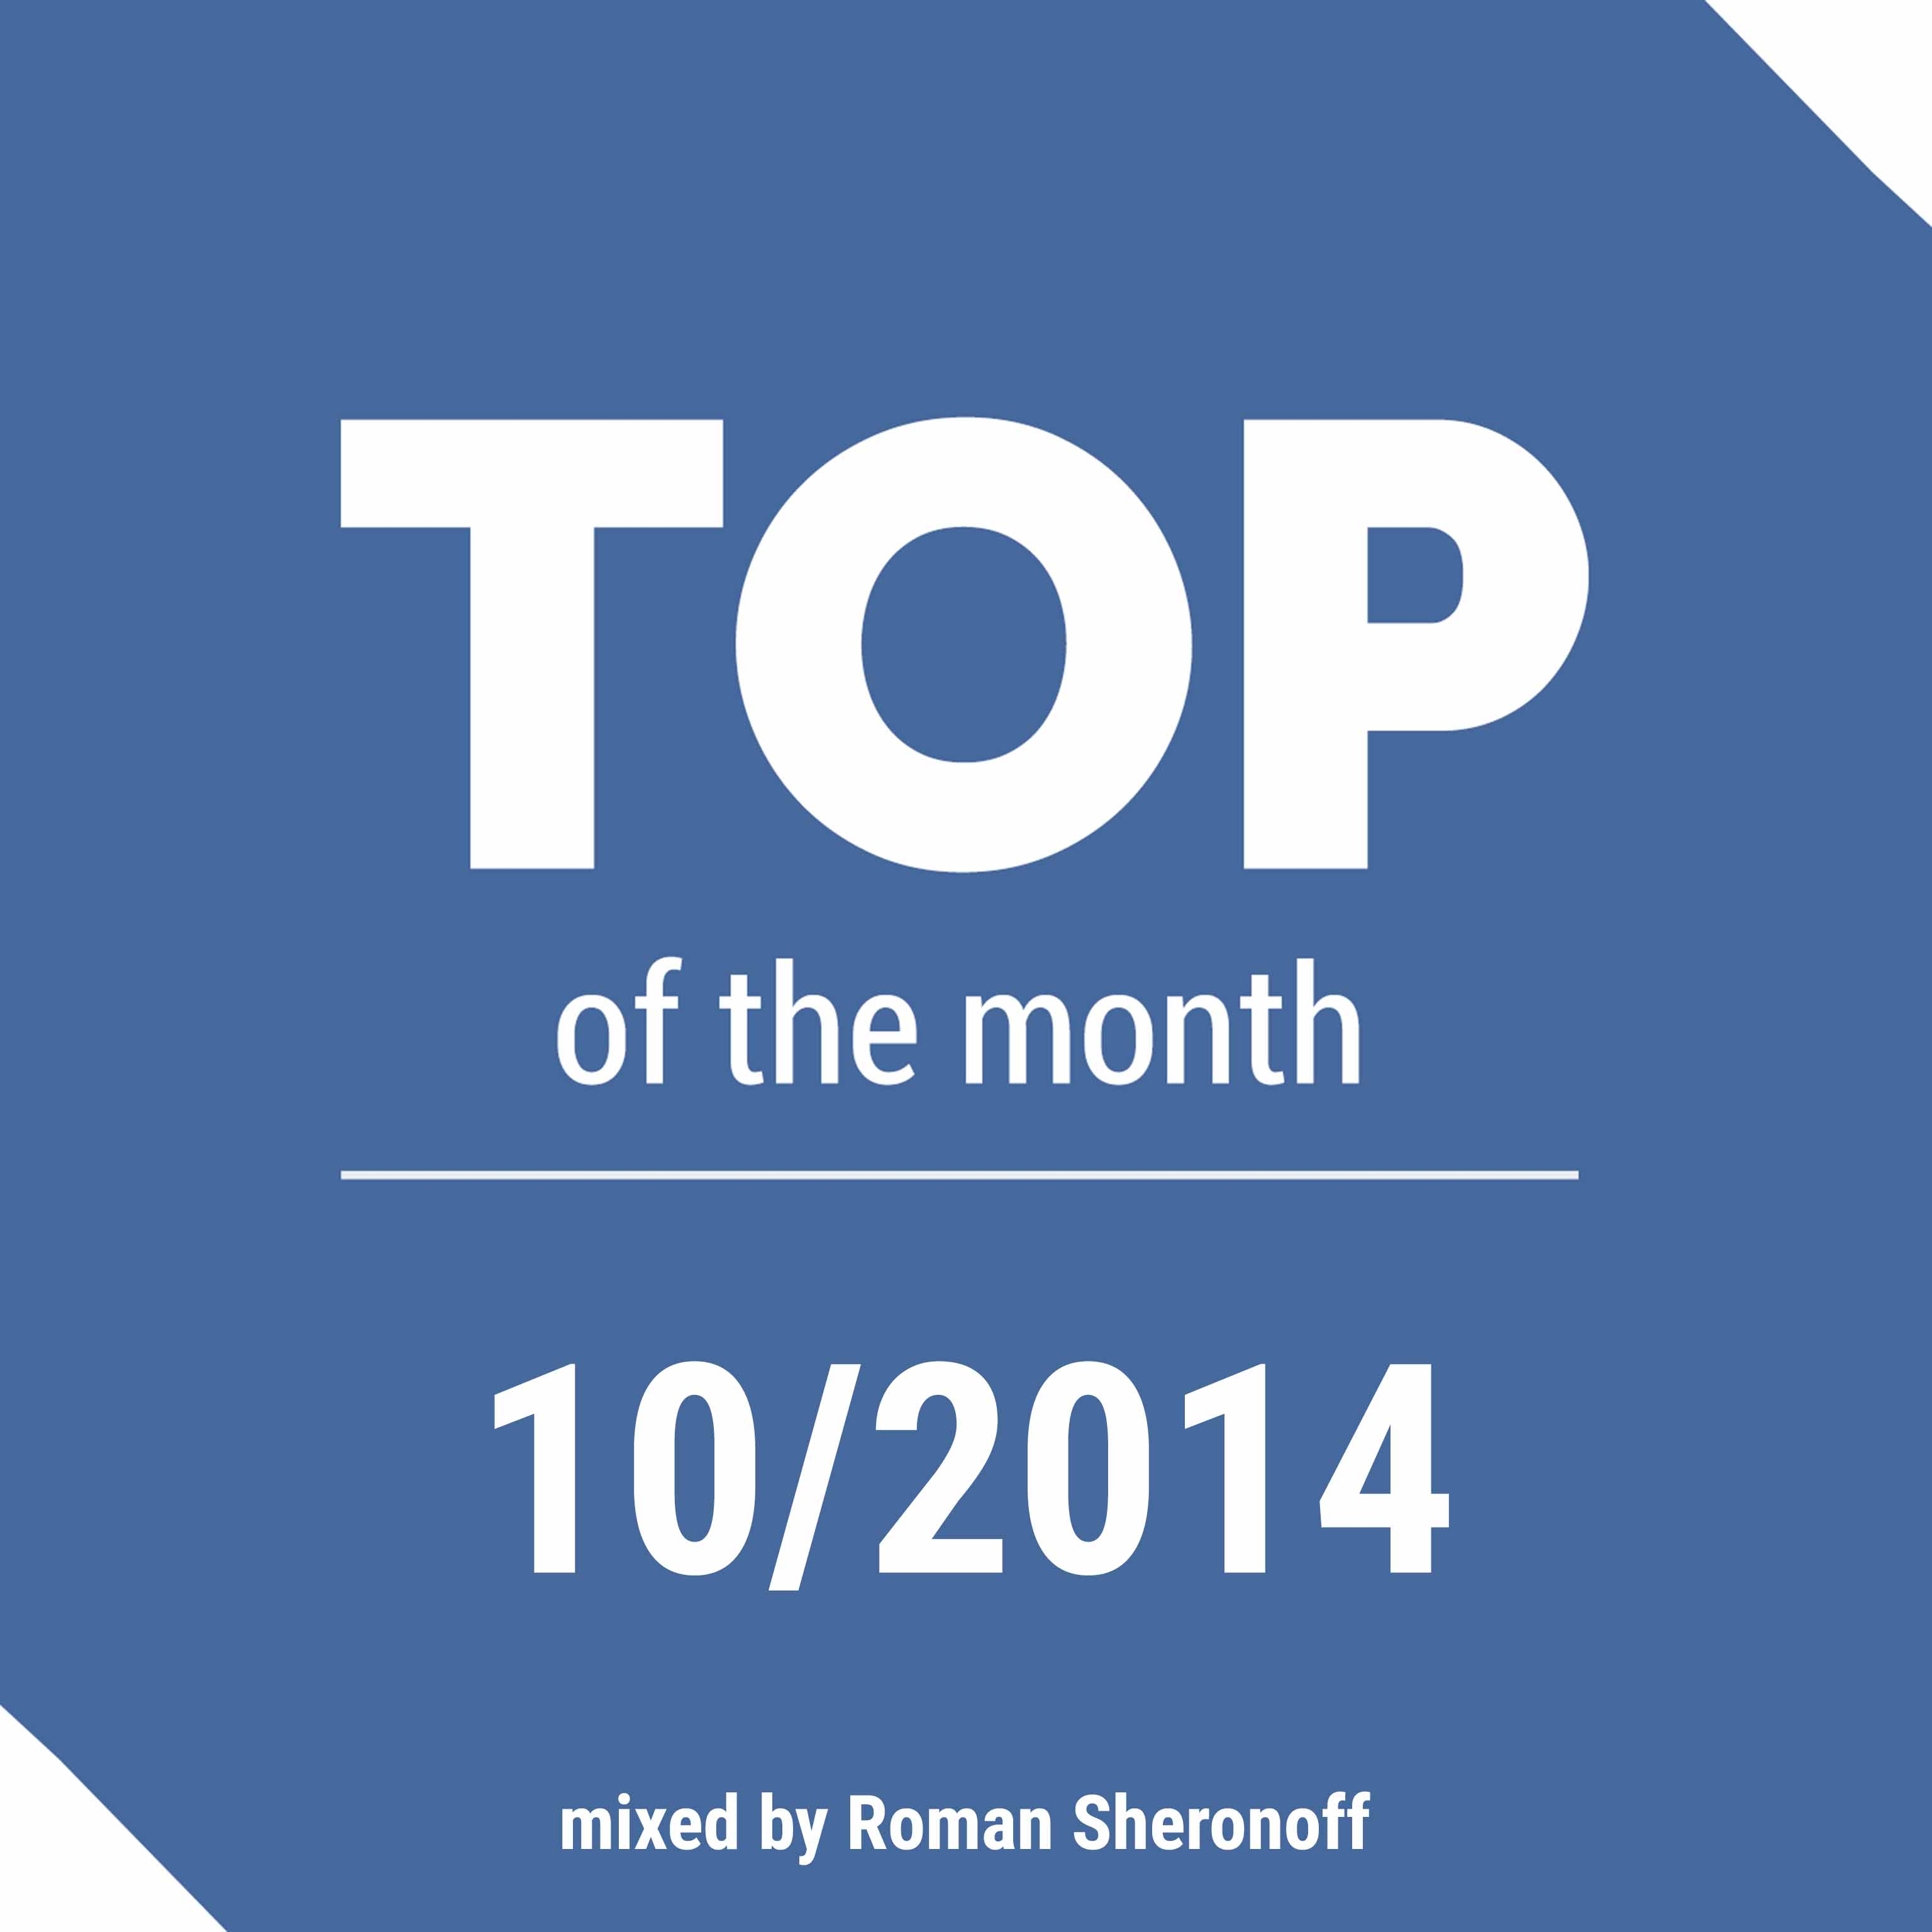 Top 10 of October 2014